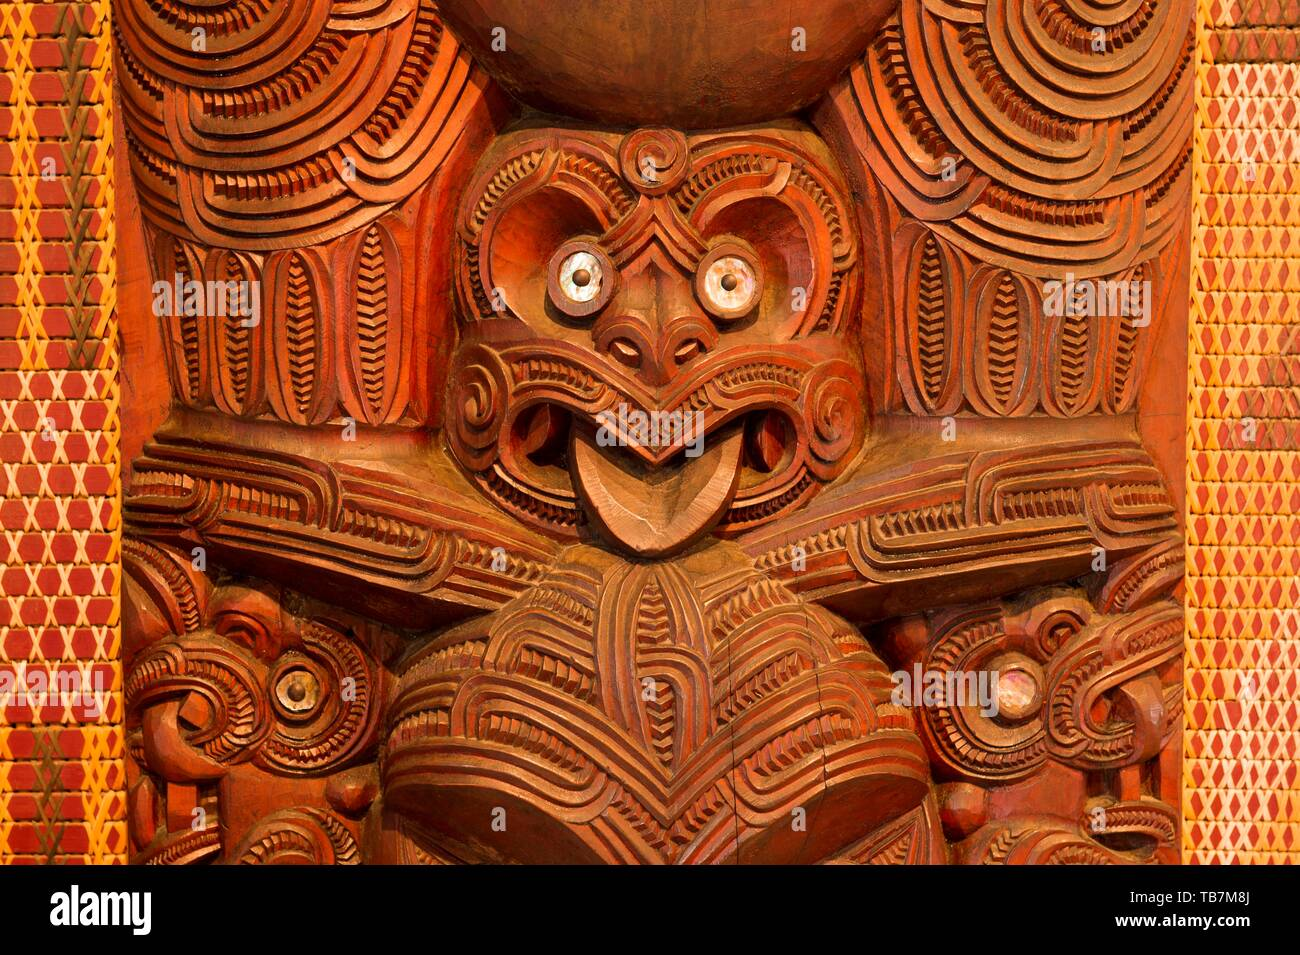 figure face traditional maori carving in the assembly hall te whare runanga waitangi far north district northland north island new zealand TB7M8J